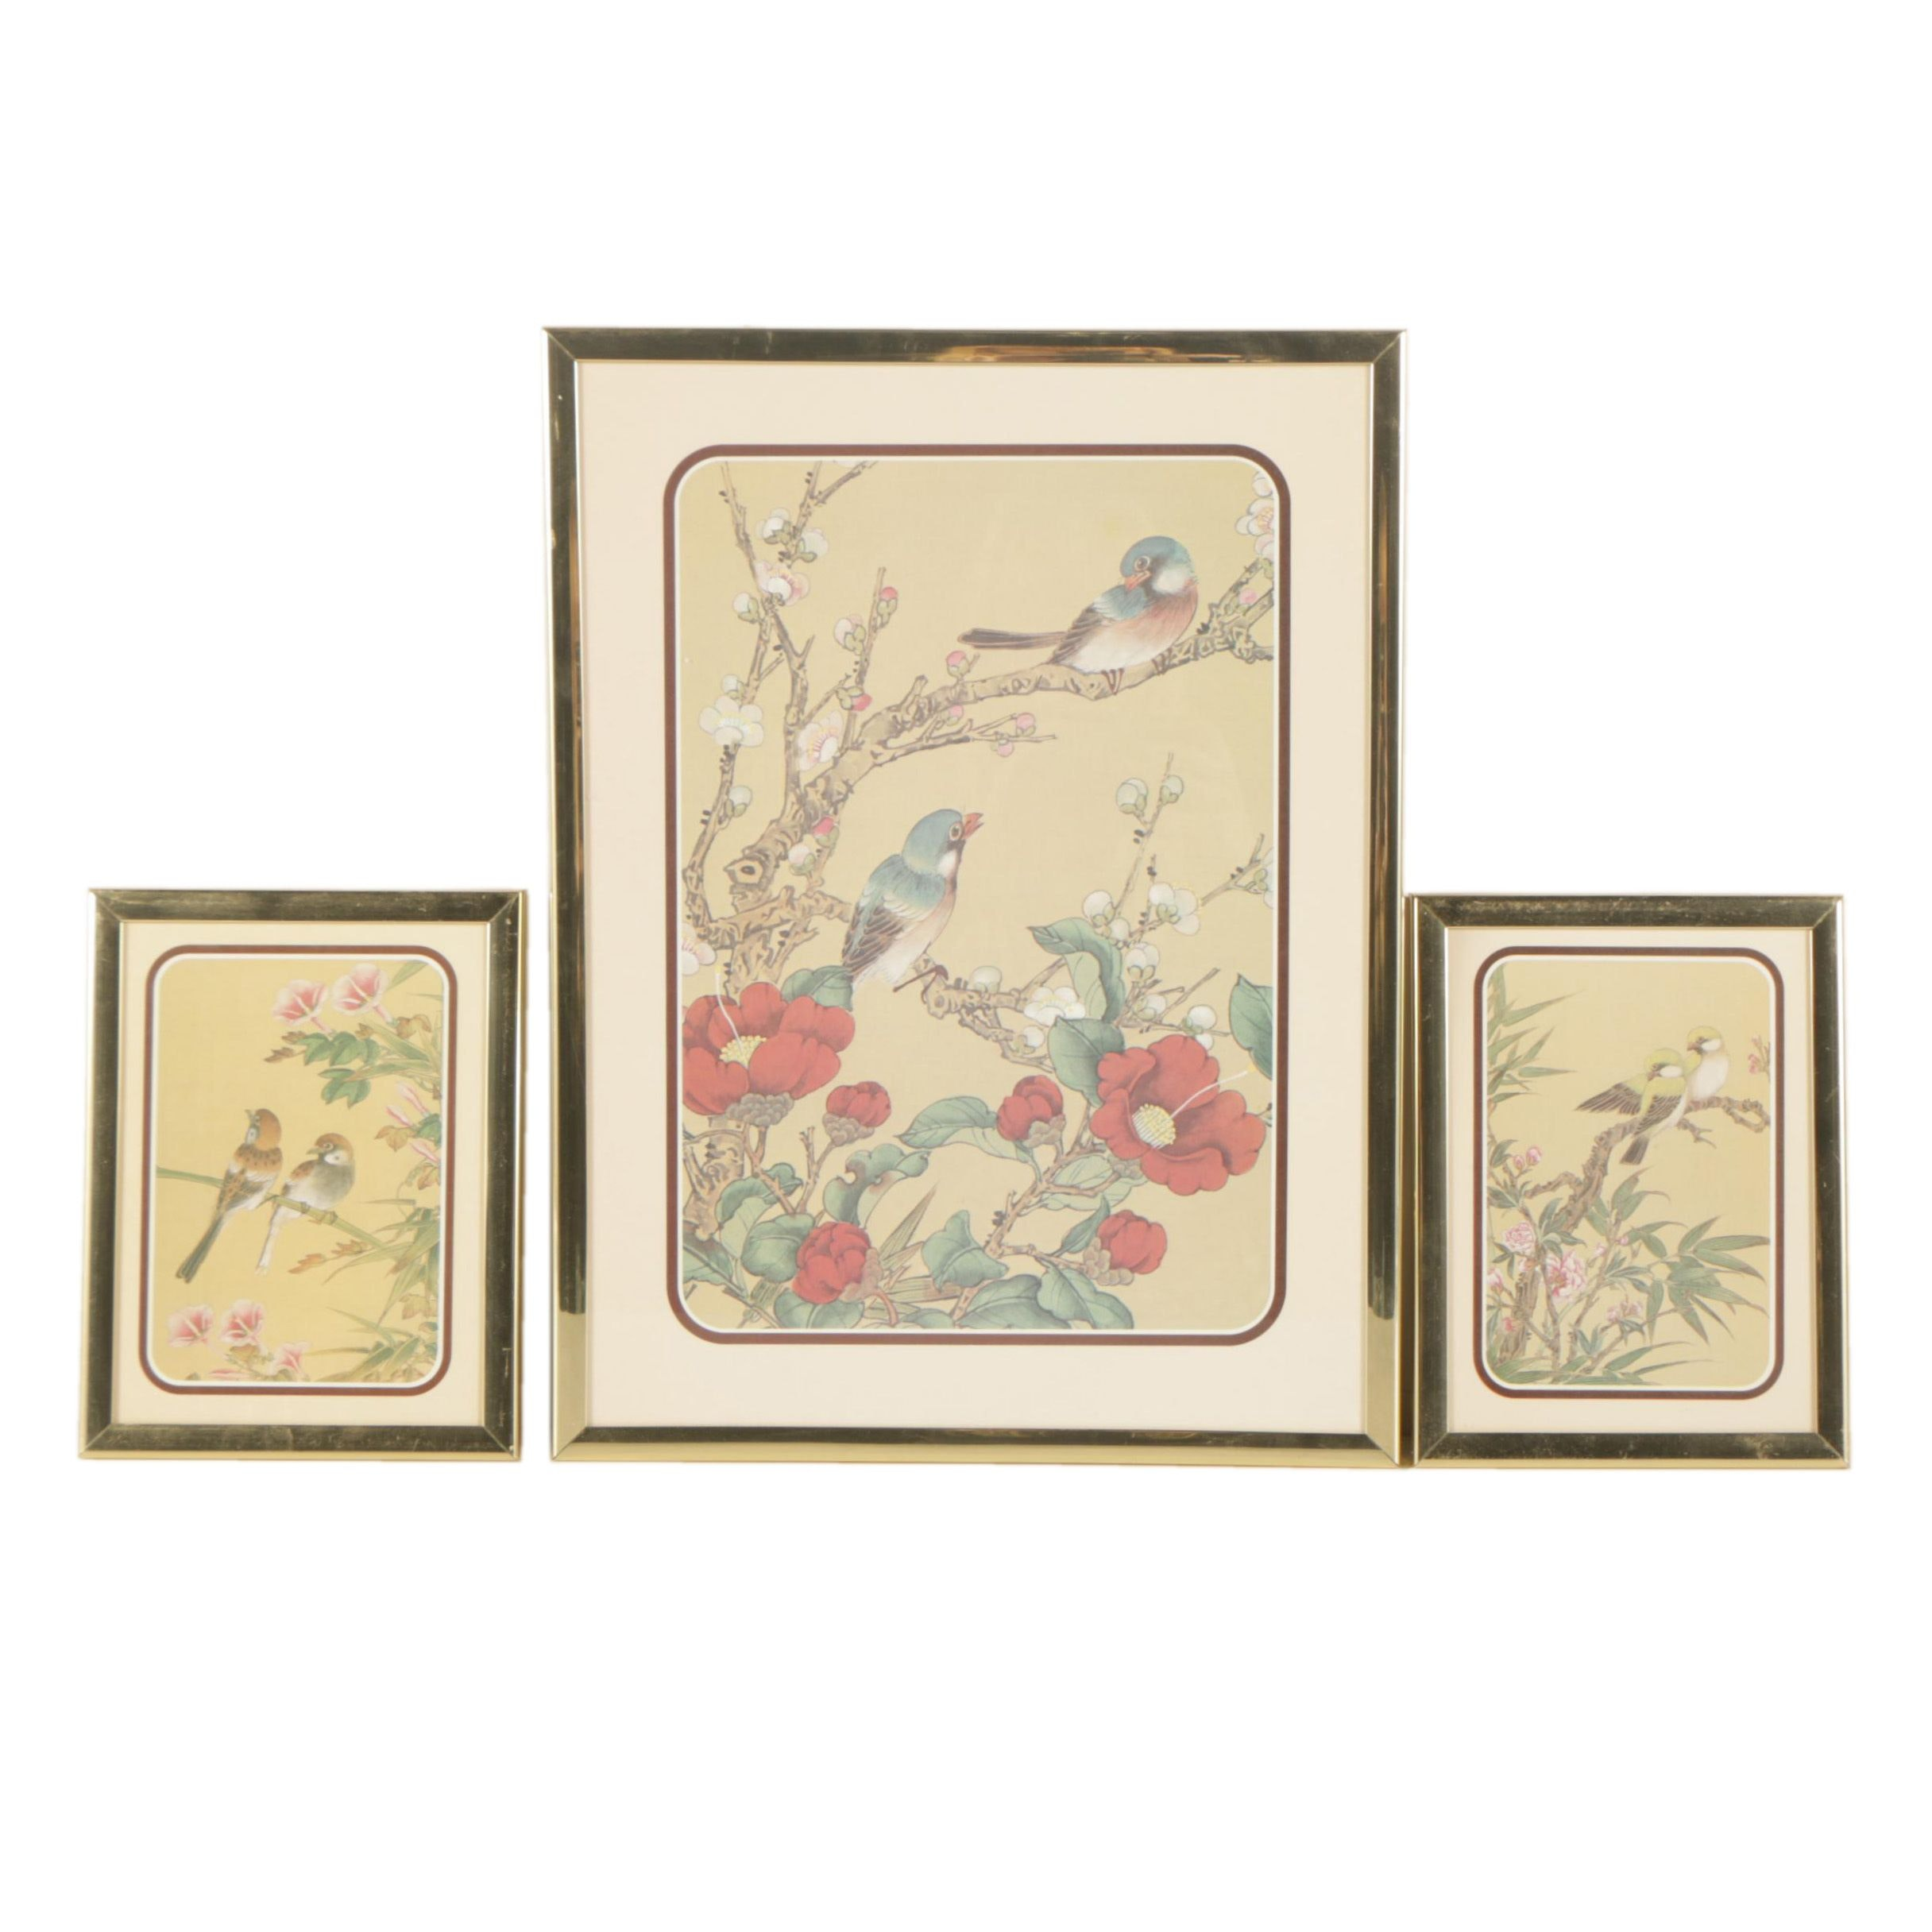 Chinese Offset Lithograph Prints of Birds and Blossoms